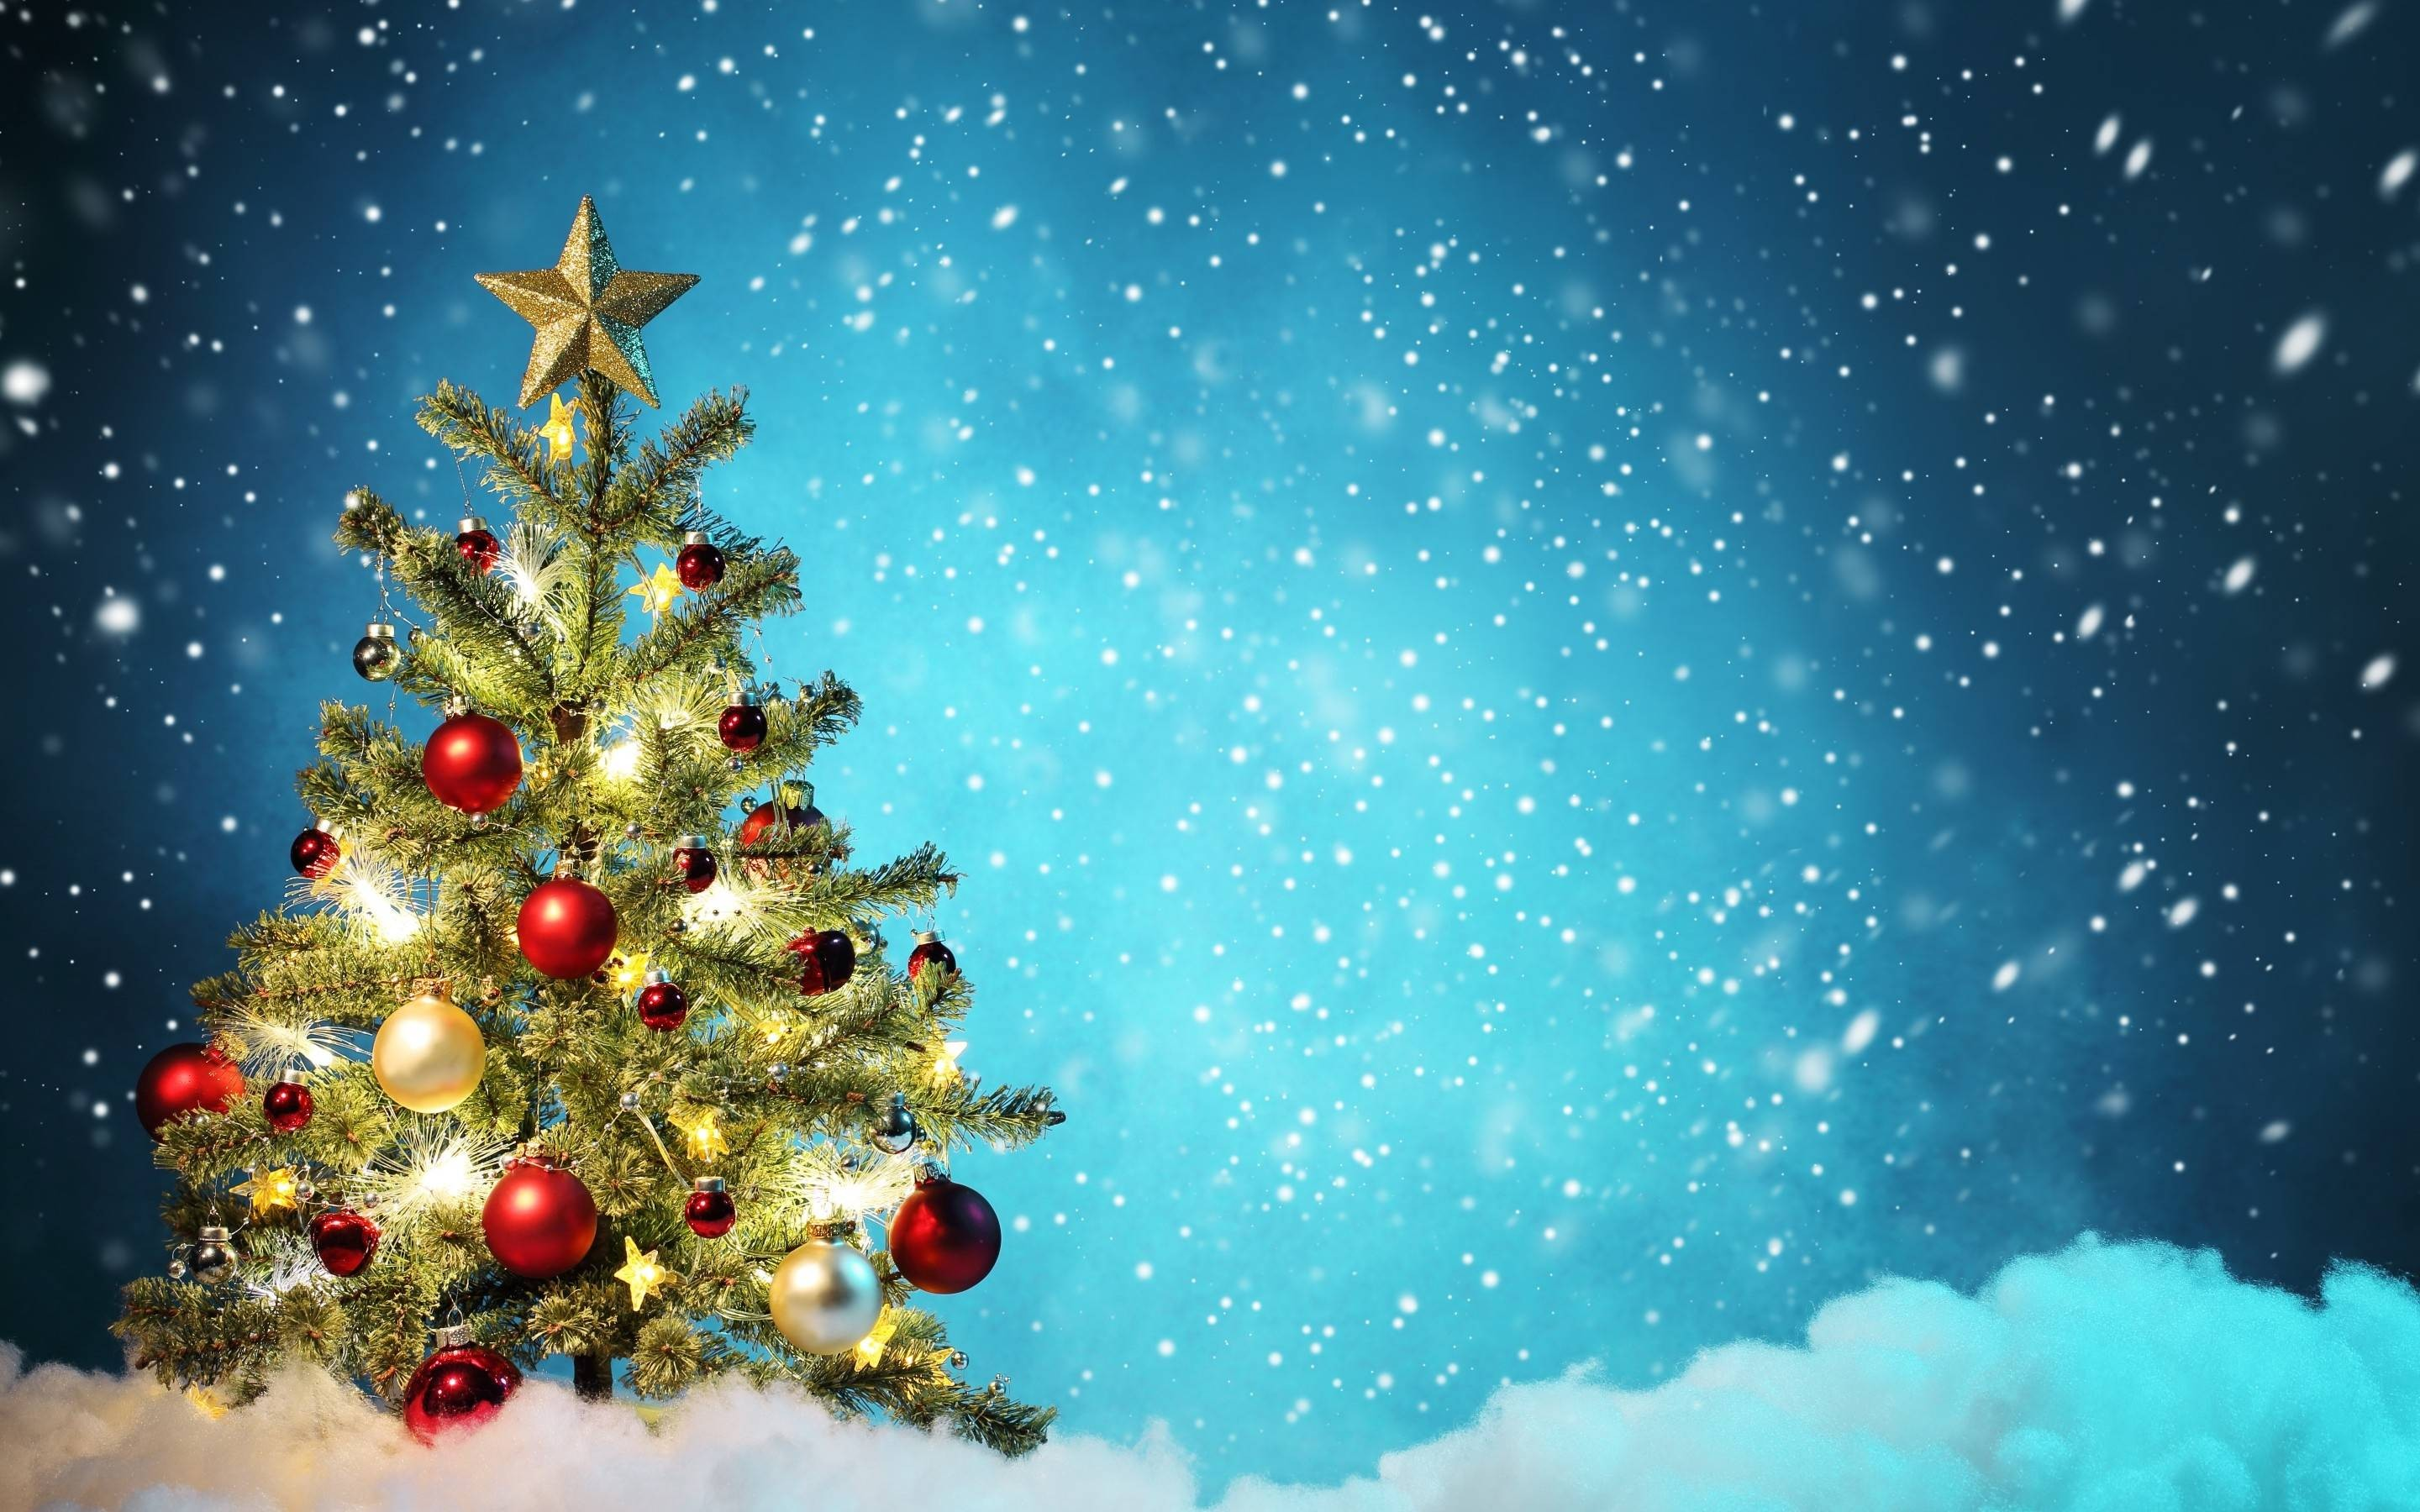 christmas tree background ·① download free stunning high resolution